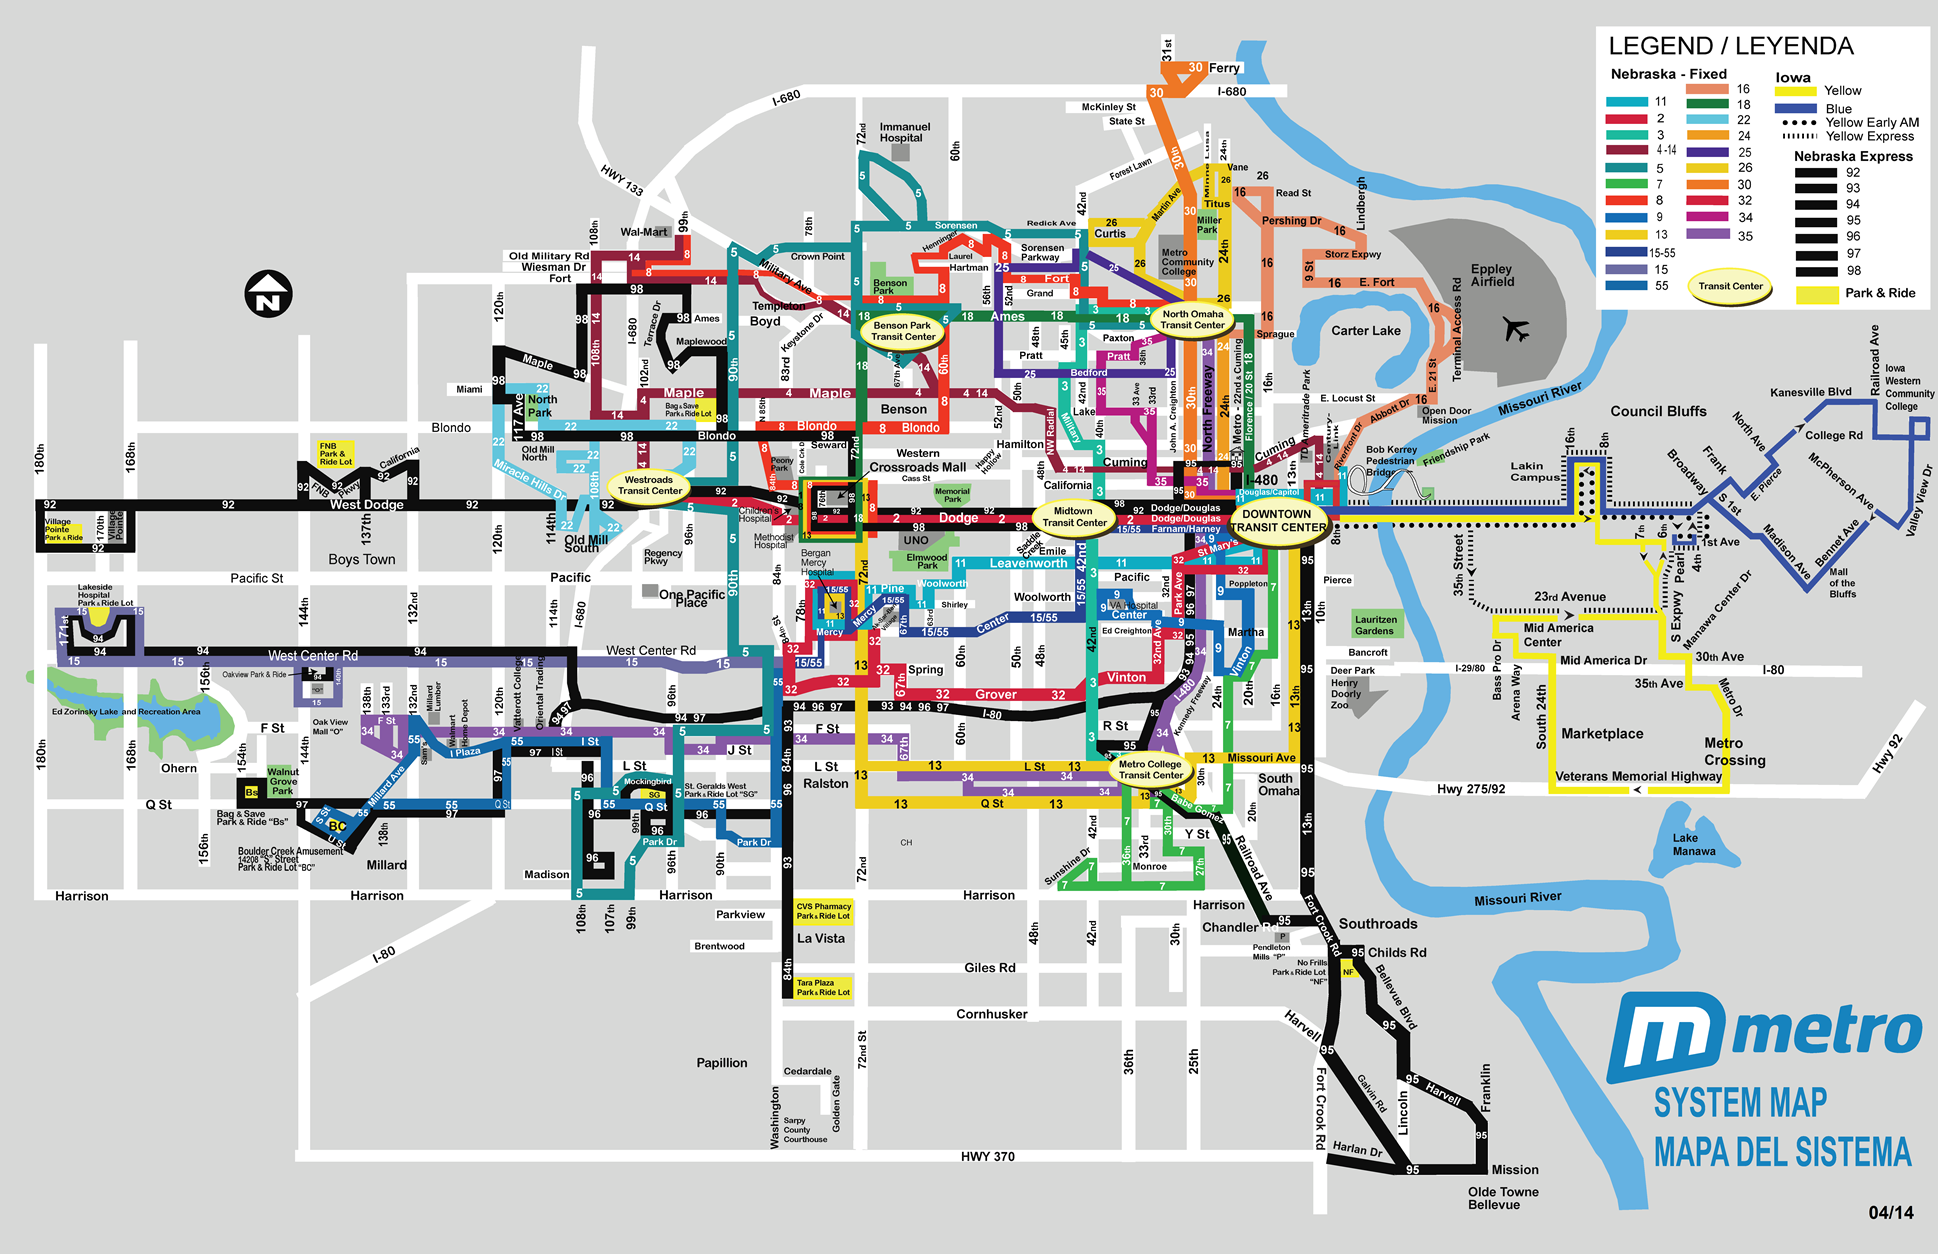 omaha airport bus lines